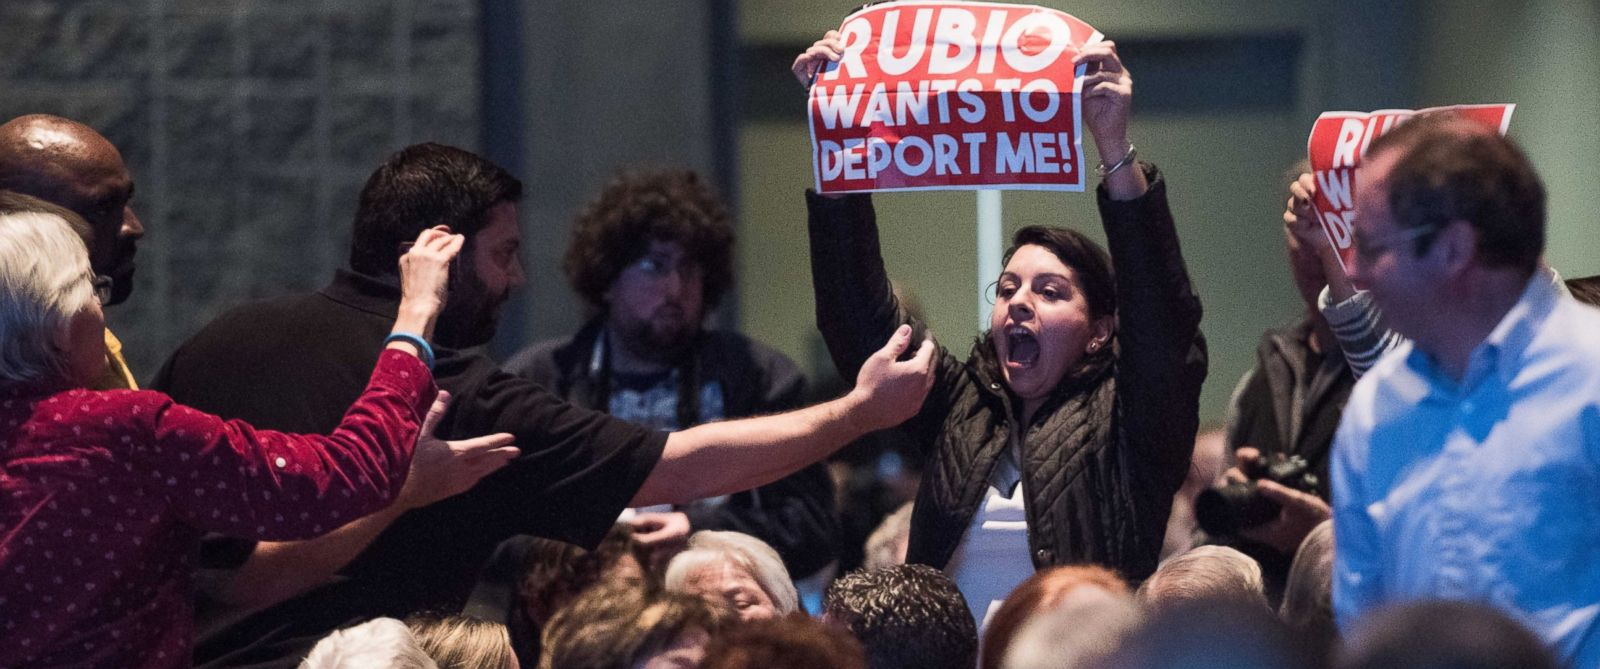 PHOTO: A protester disrupts presidential candidate, Sen. Marco Rubio at an economic forum, Saturday, Jan. 9, 2016, in Columbia, S.C.